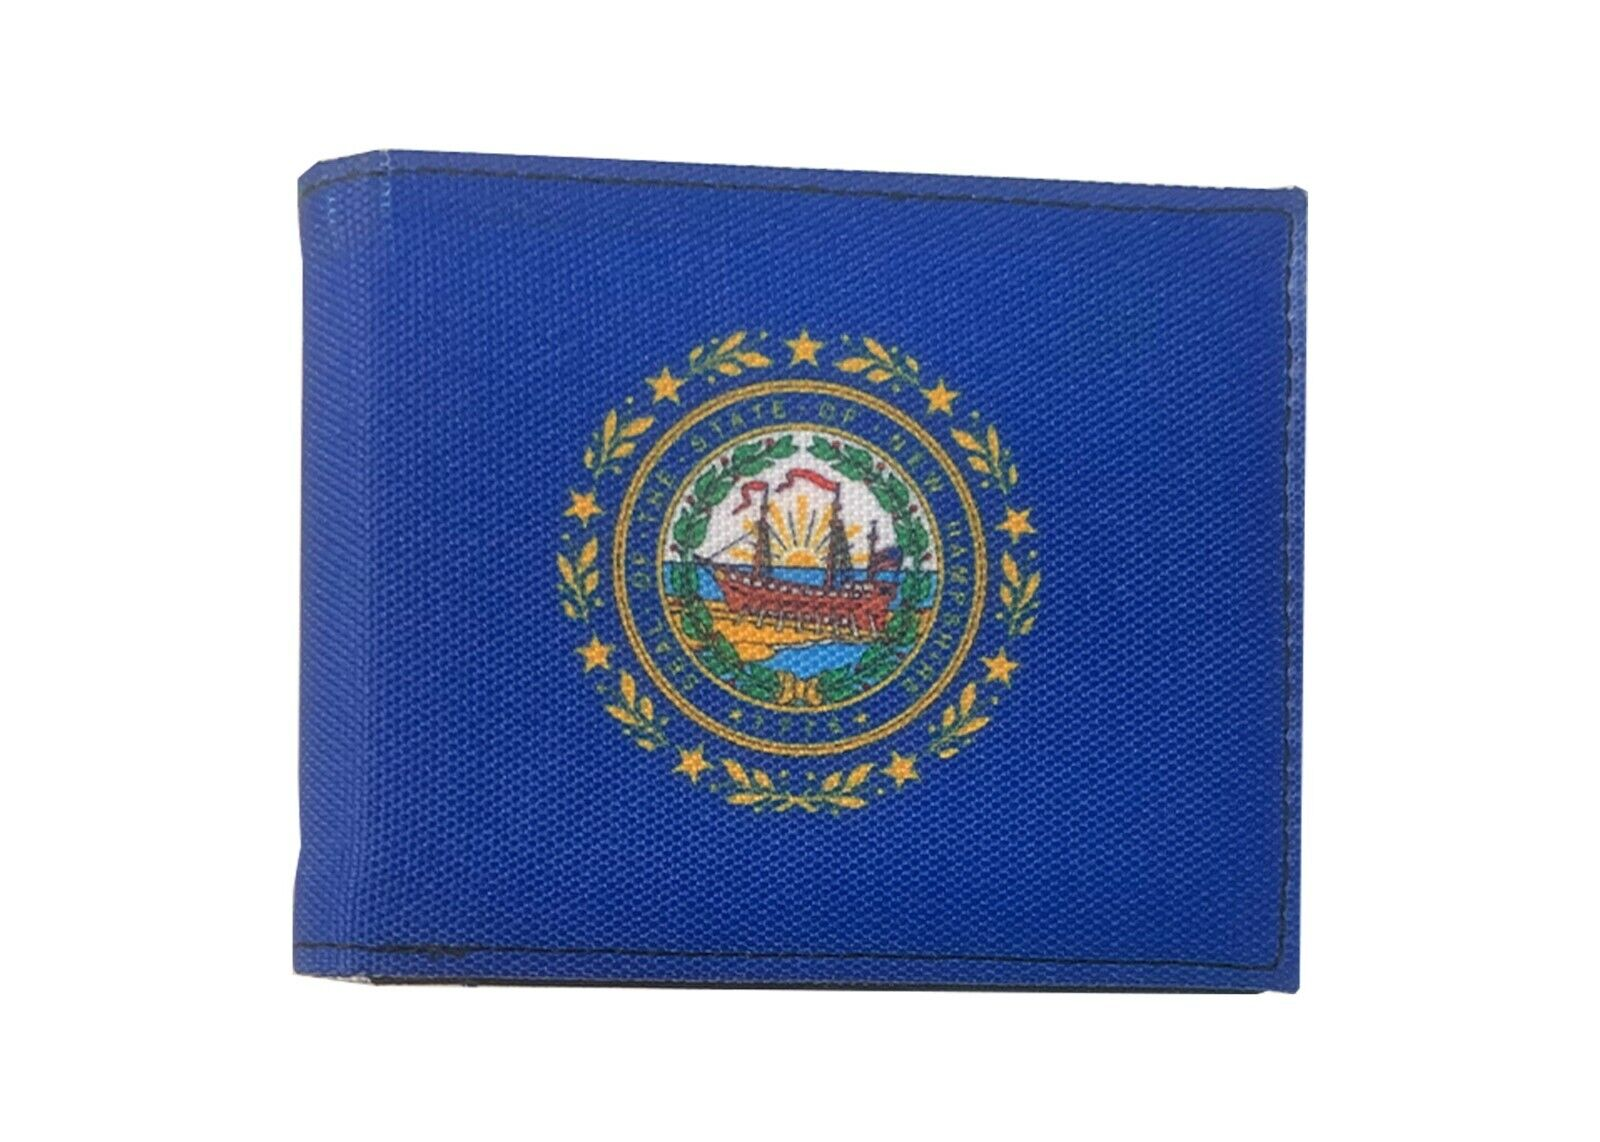 New Hampshire Flag Canvas Folding Billfold Wallet United States NH Brand New USA